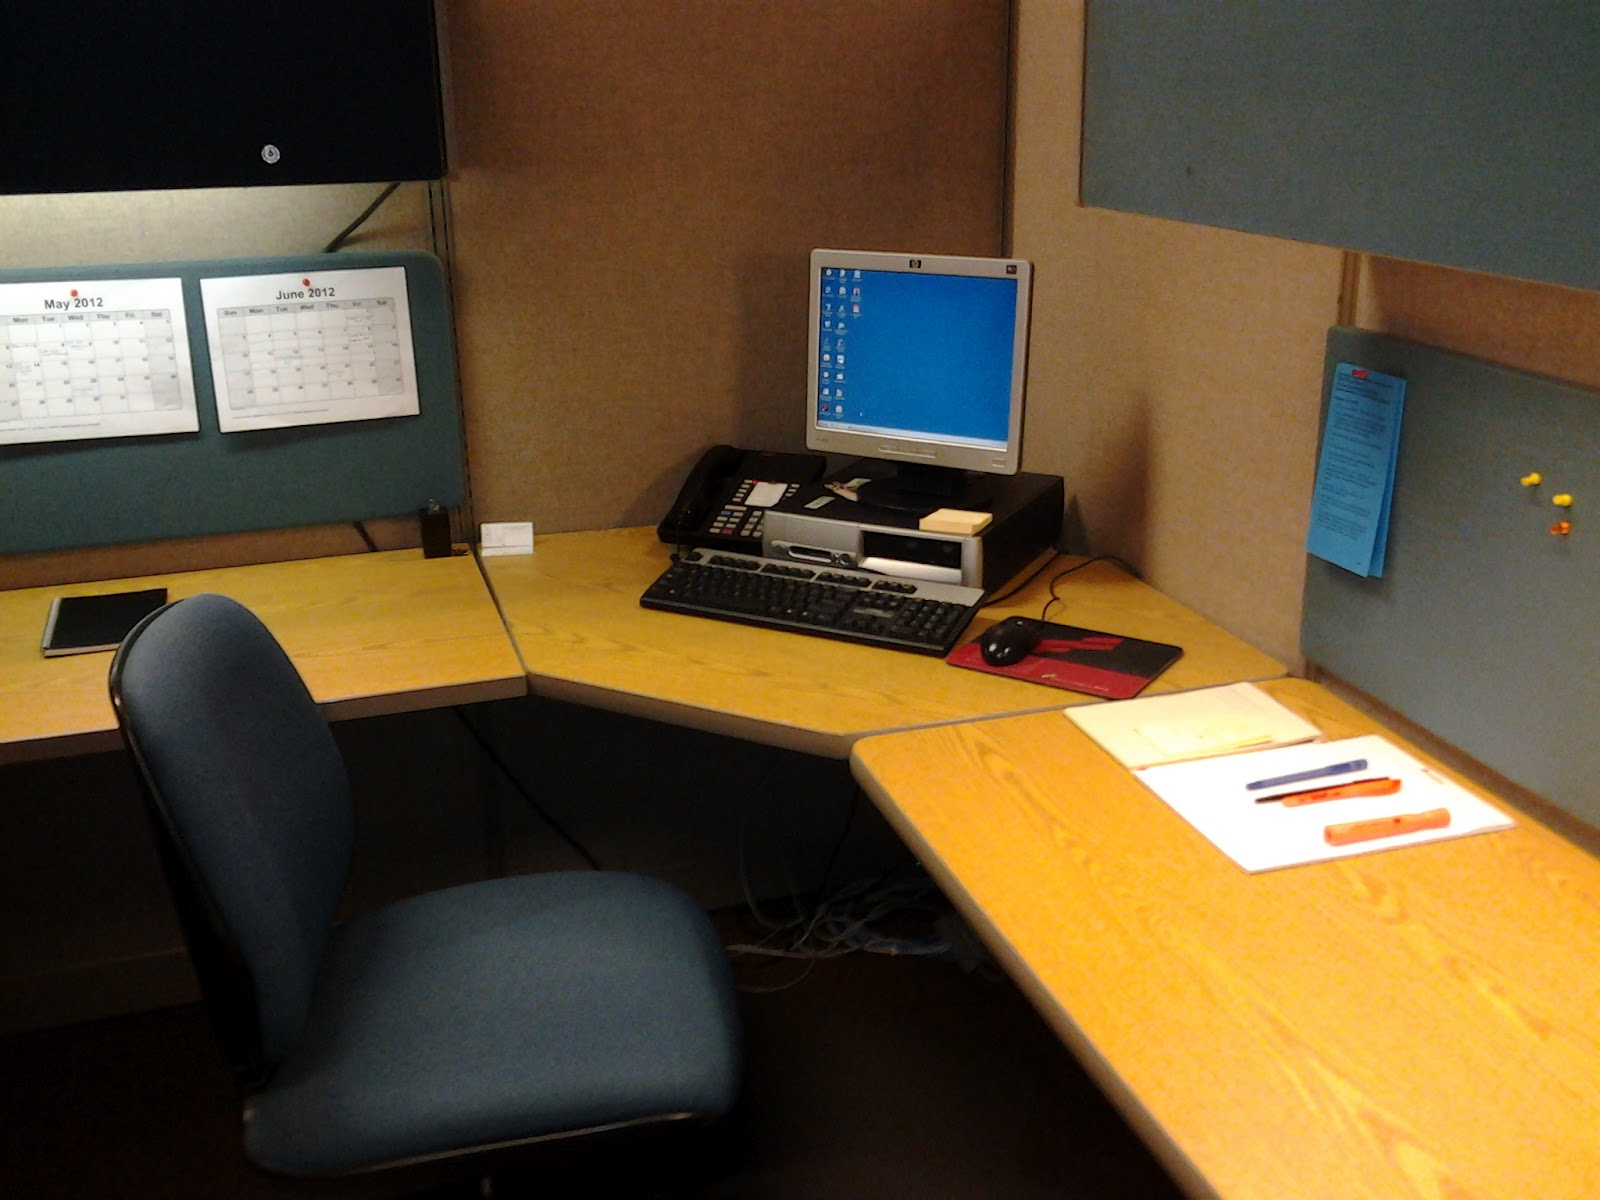 My double life first week as an intern for Cool things for your cubicle